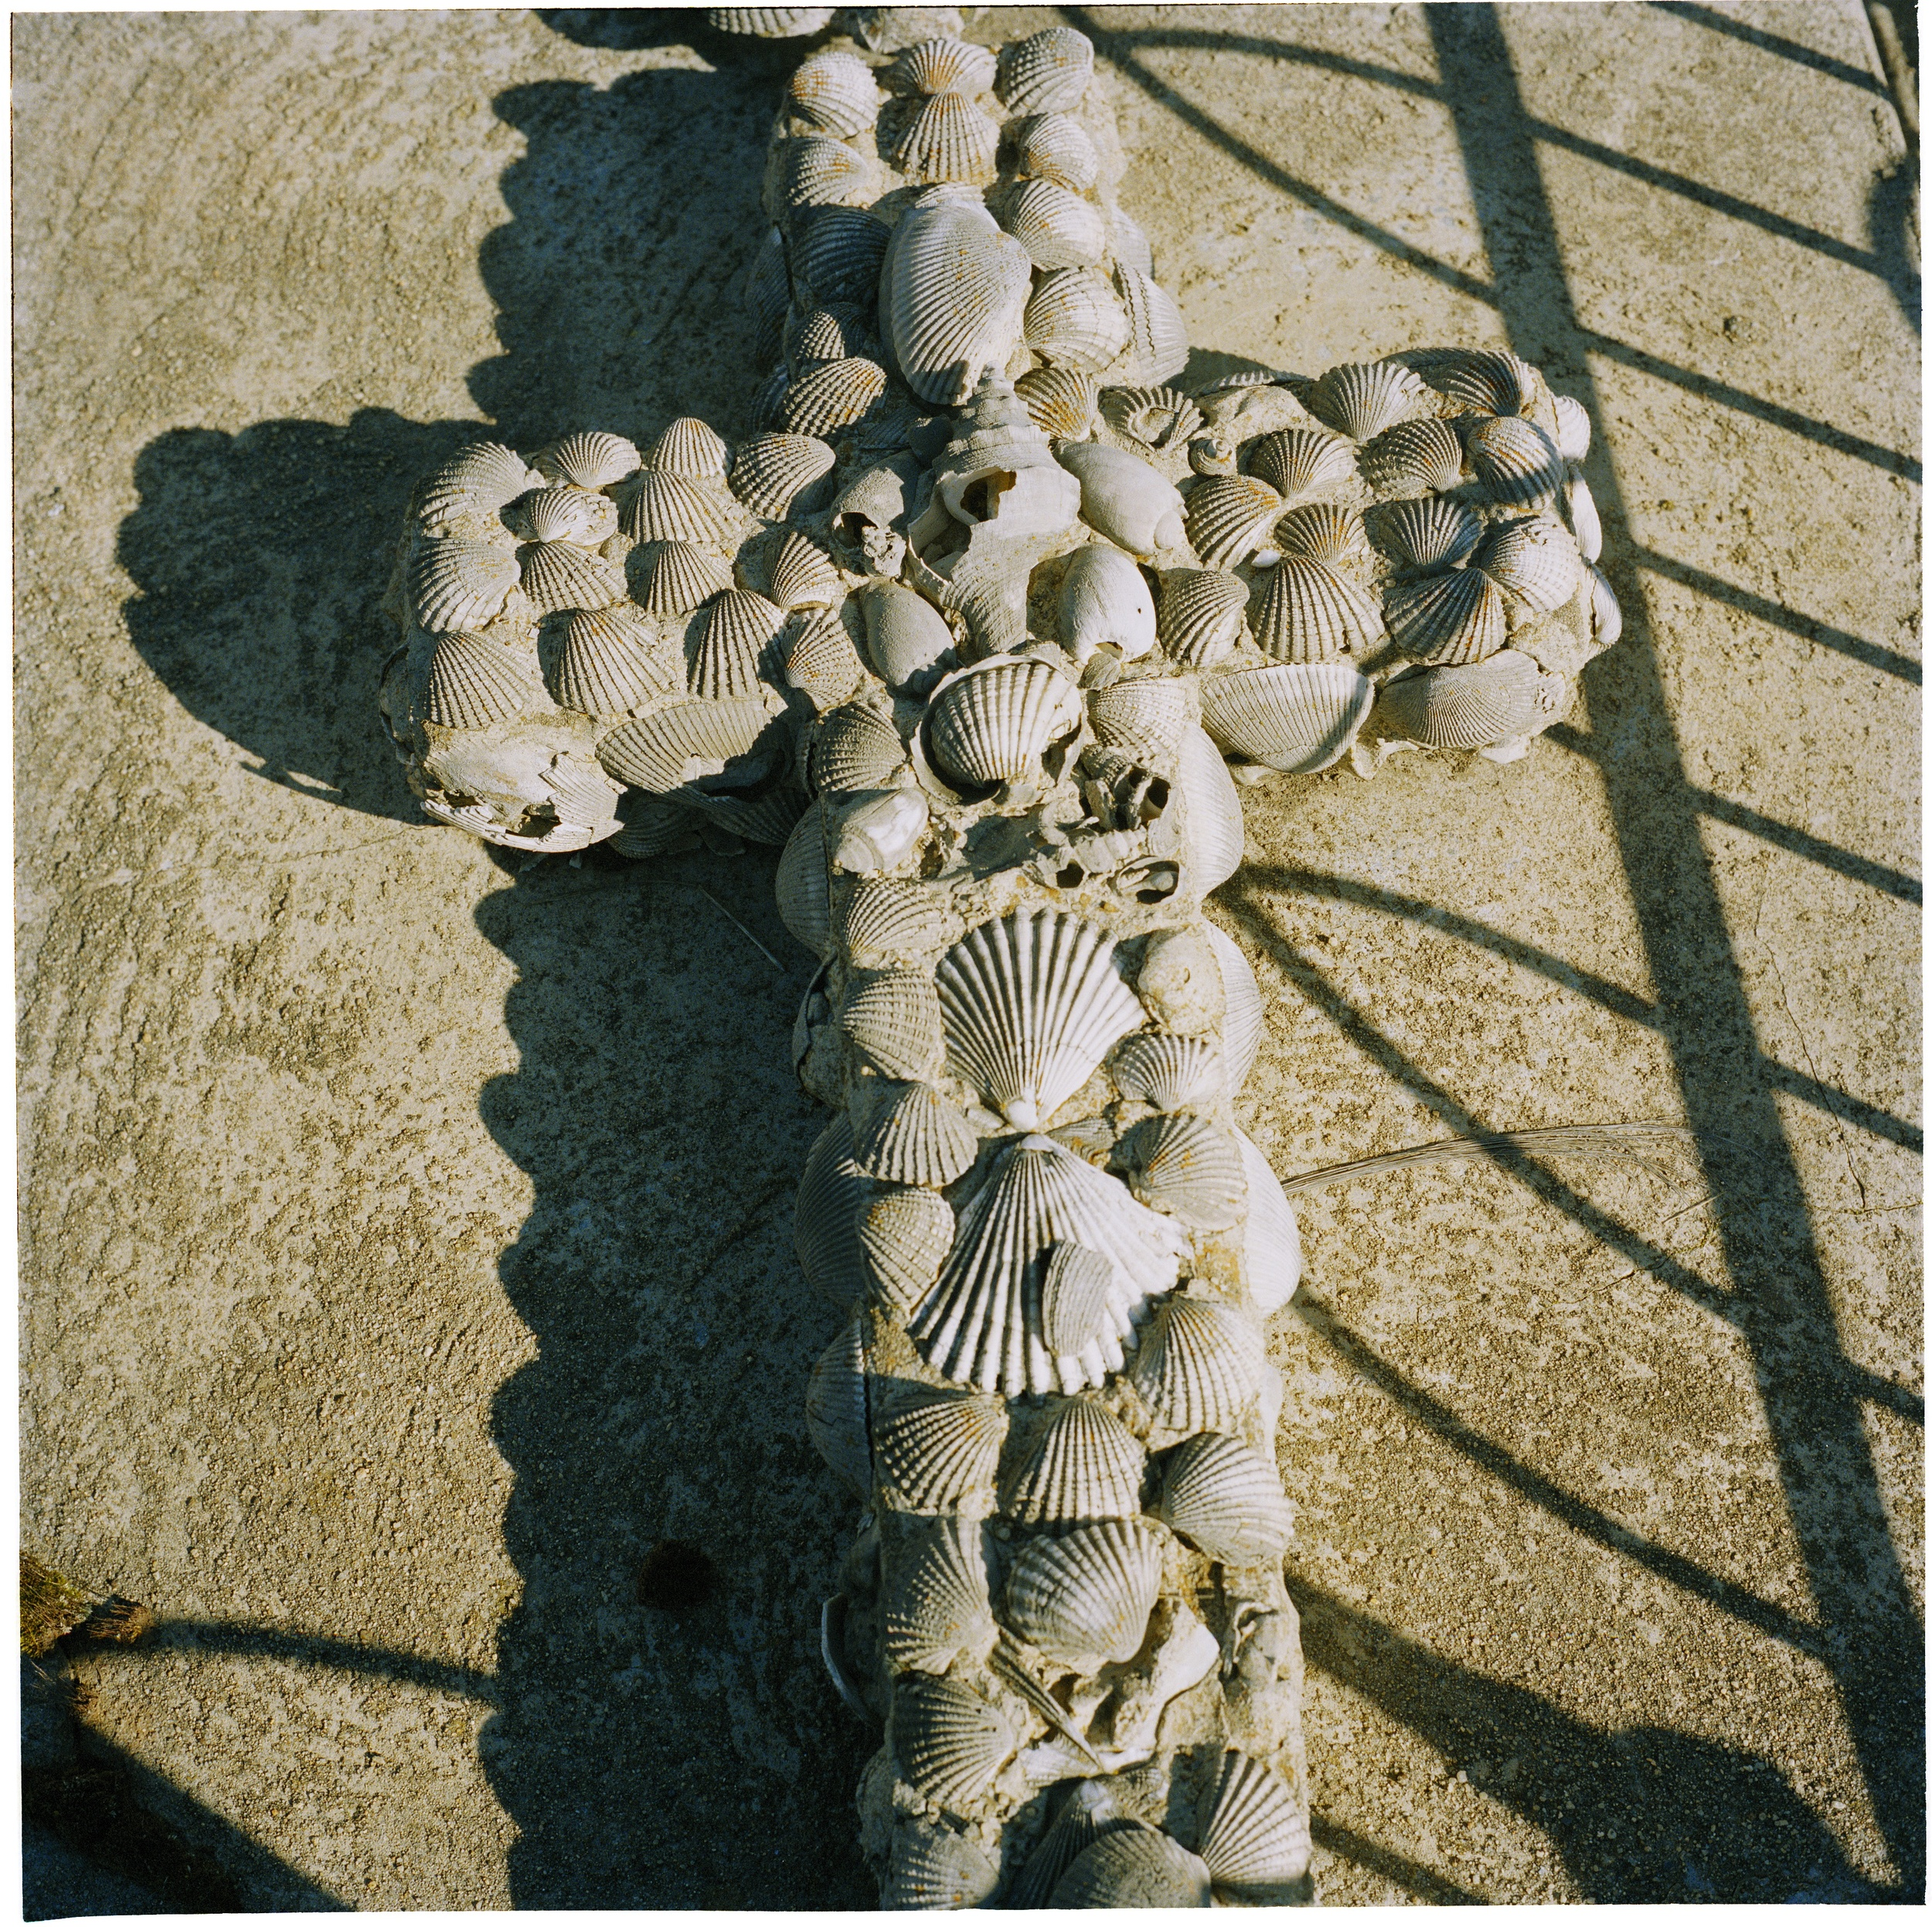 Cross of Shells (2008)